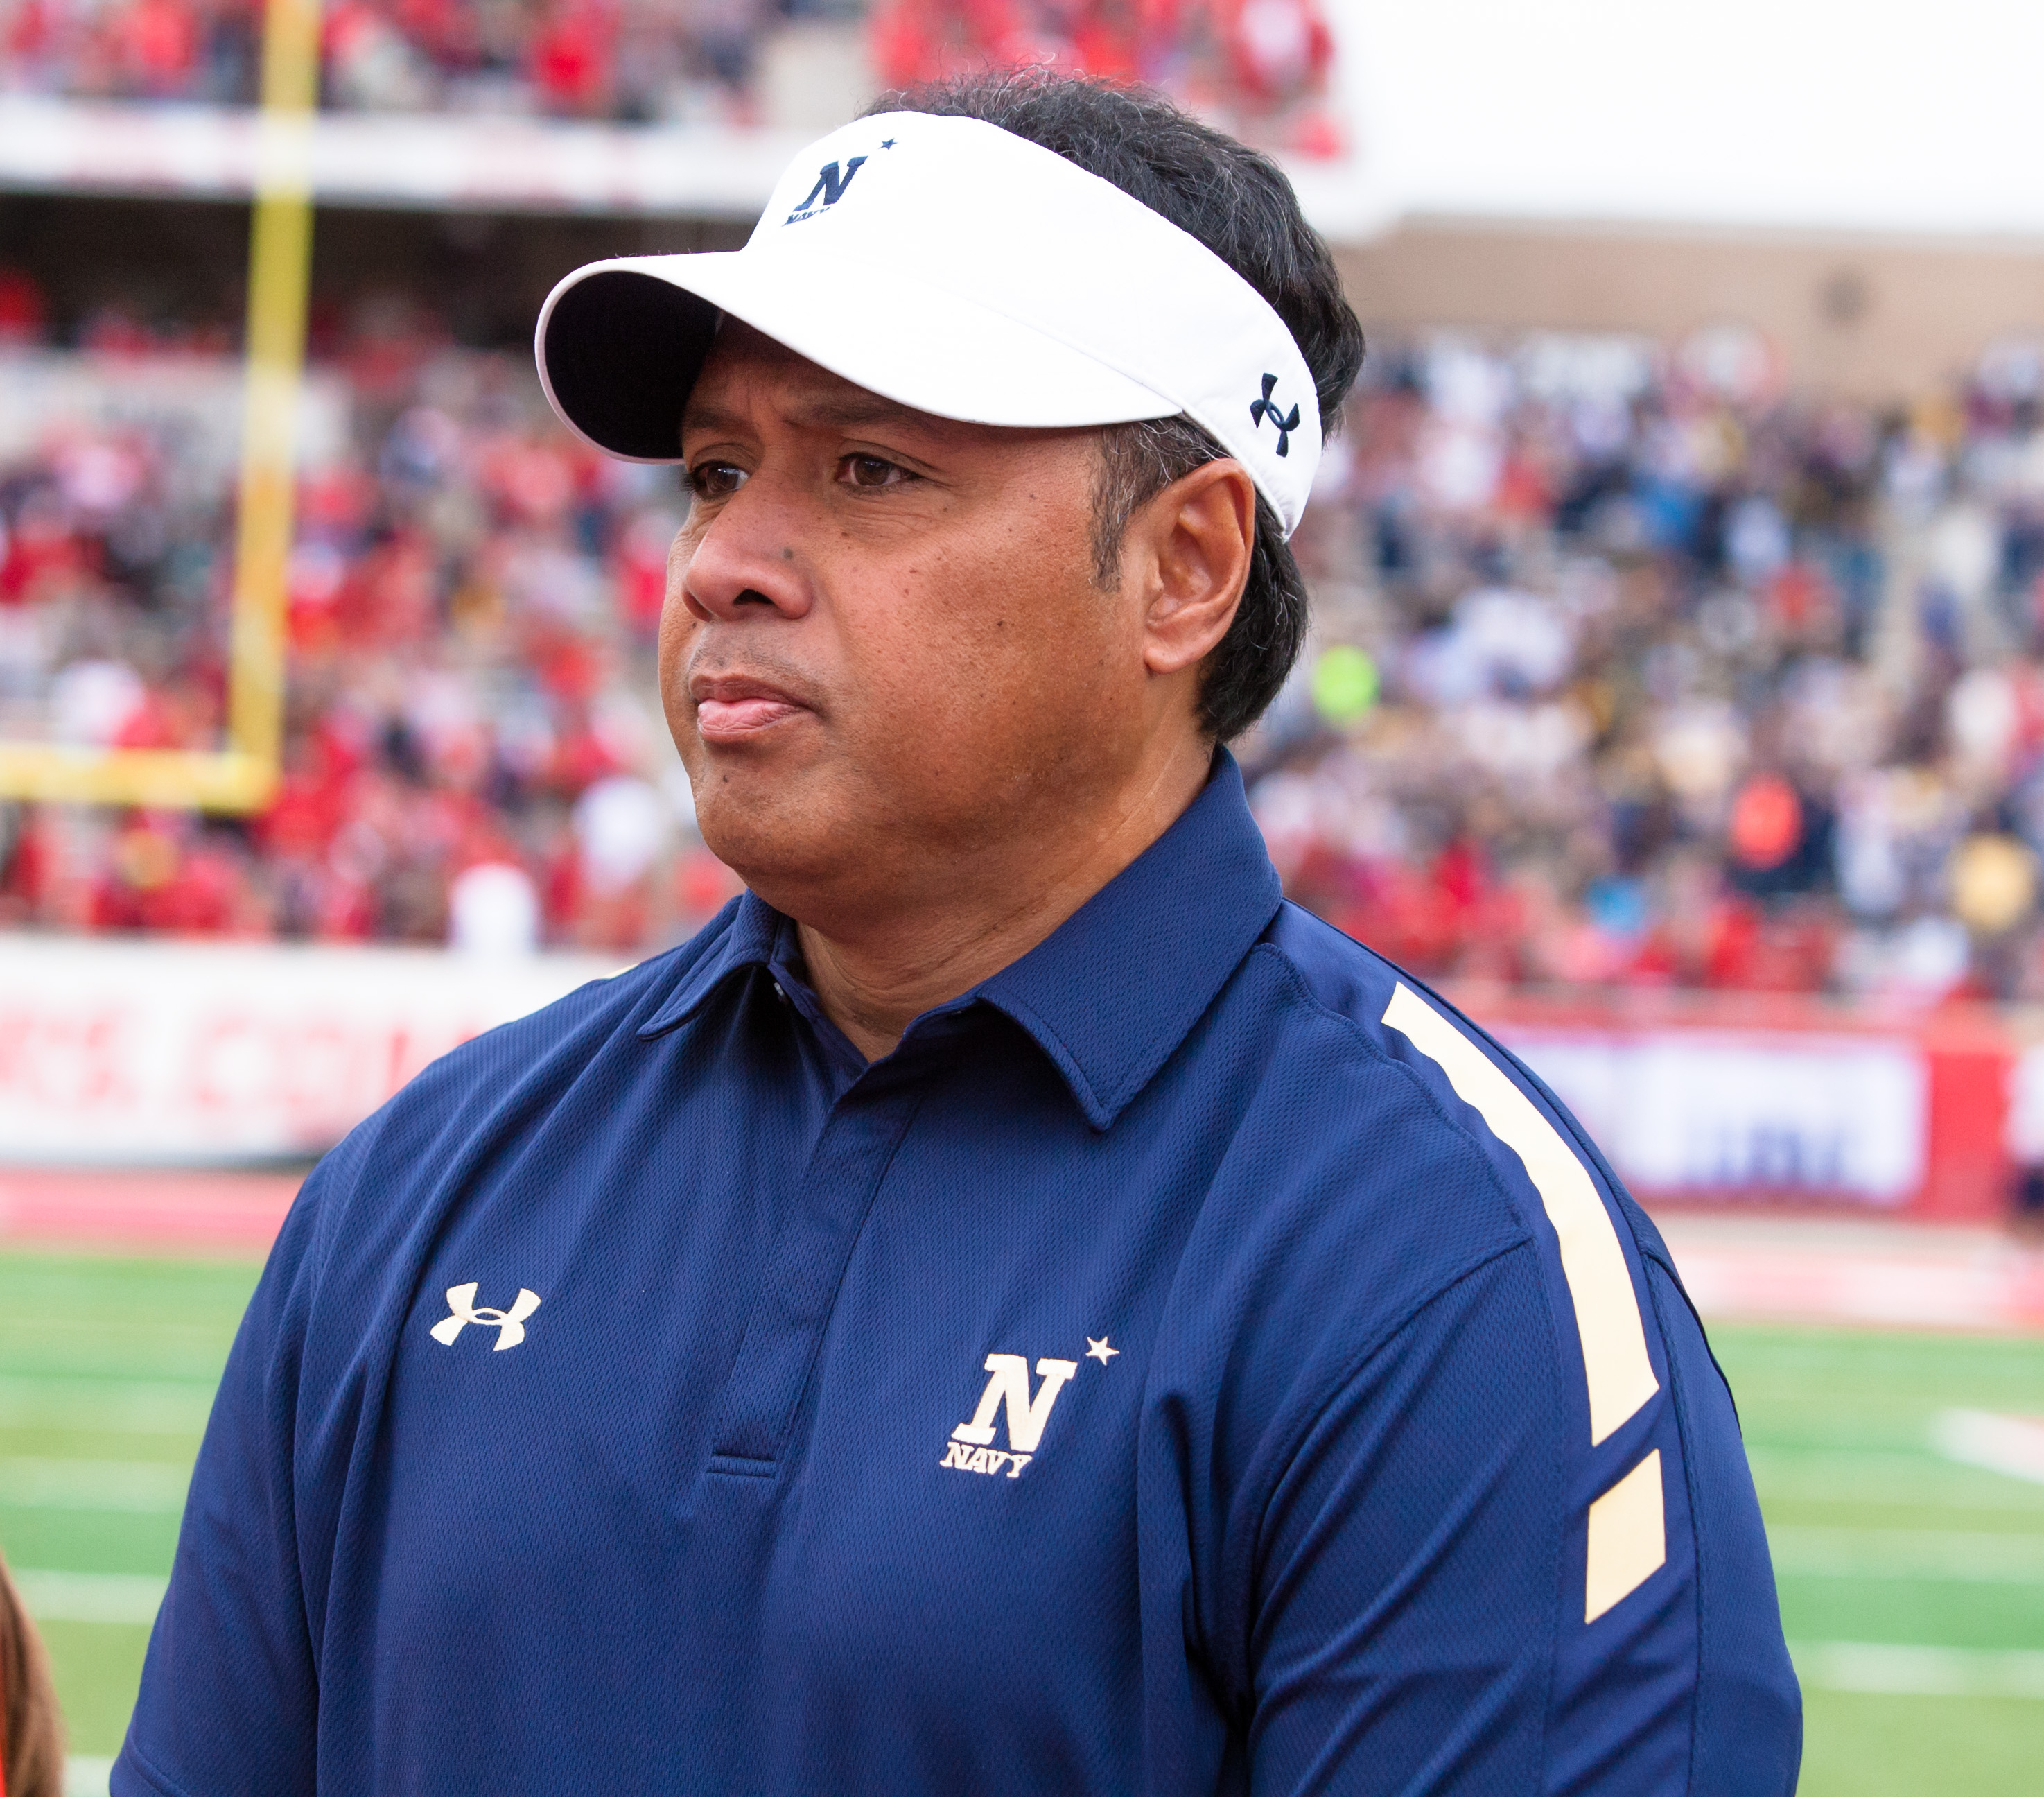 FILE - This Nov. 27, 2015, file photo shows Navy's head coach Ken Niumatalolo on the field for the coin toss before an NCAA college football game between Houston and Navy in Houston, Texas. To no ones surprise, the very first question asked of Niumatalolo